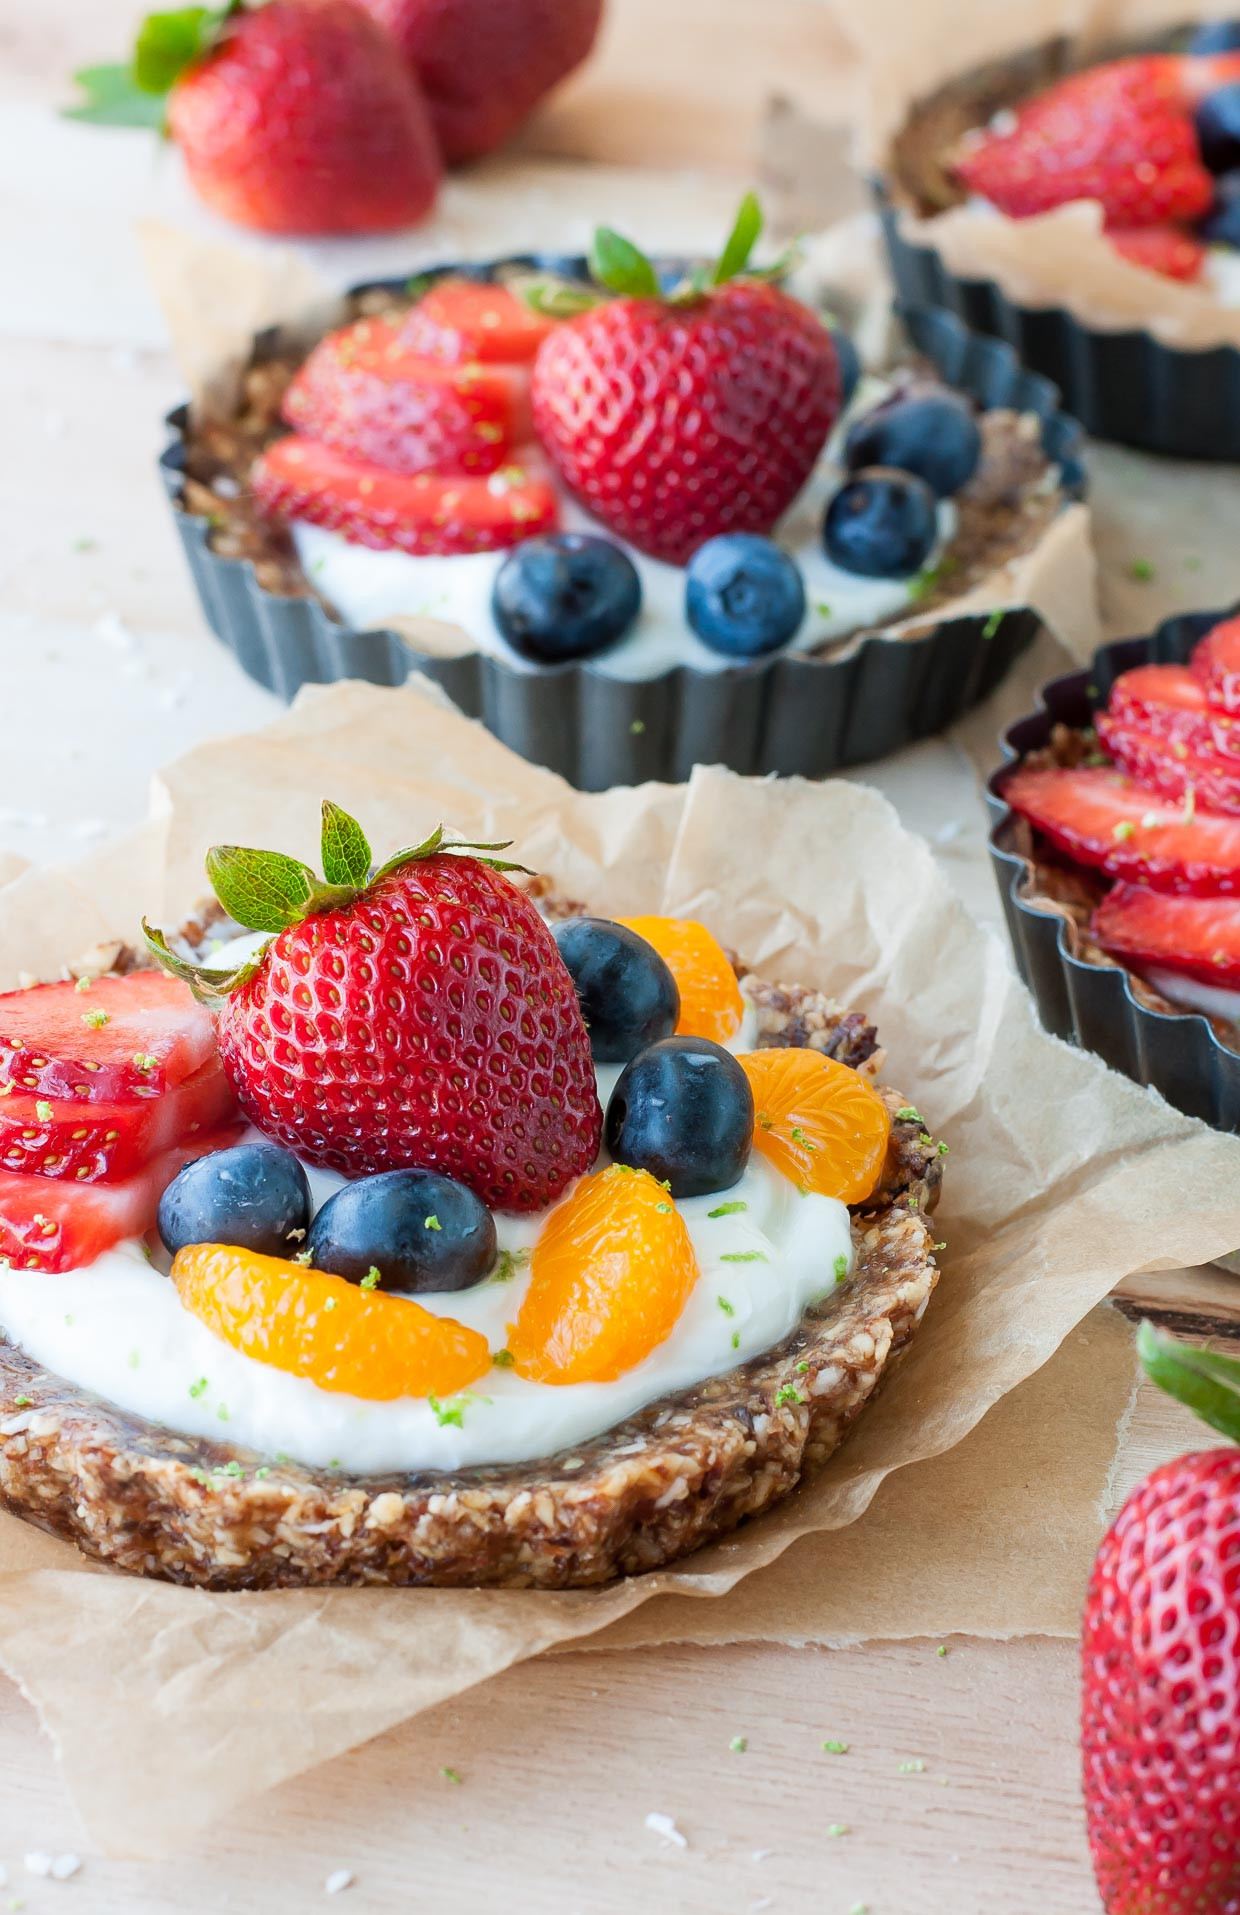 Healthy No Bake Desserts  Healthy No Bake Coconut Lime Tarts with Fruit and Yogurt